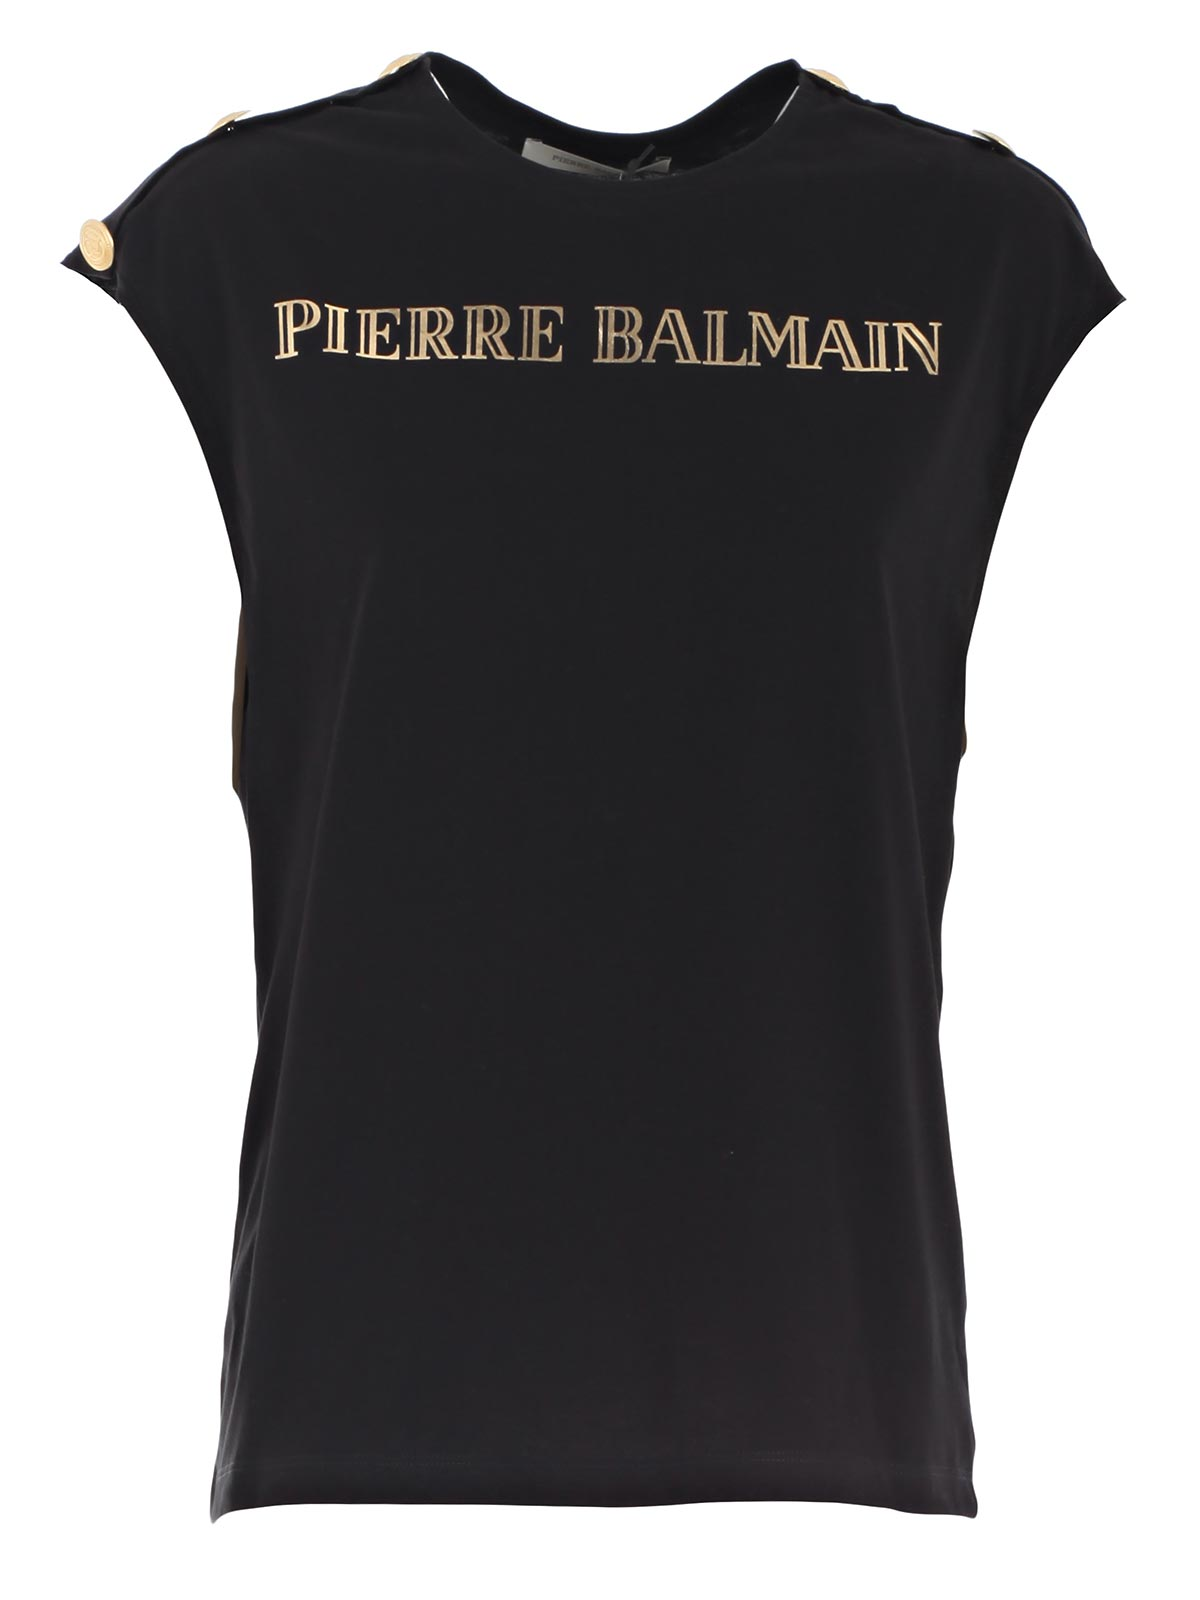 Pierre Balmain online. Our Pierre Balmain online page offers you useful information about this brand, which thus far you perhaps weren't able to find. You will learn about the Pierre Balmain stores, their opening hours and you will even find here maps to the nearest stores.